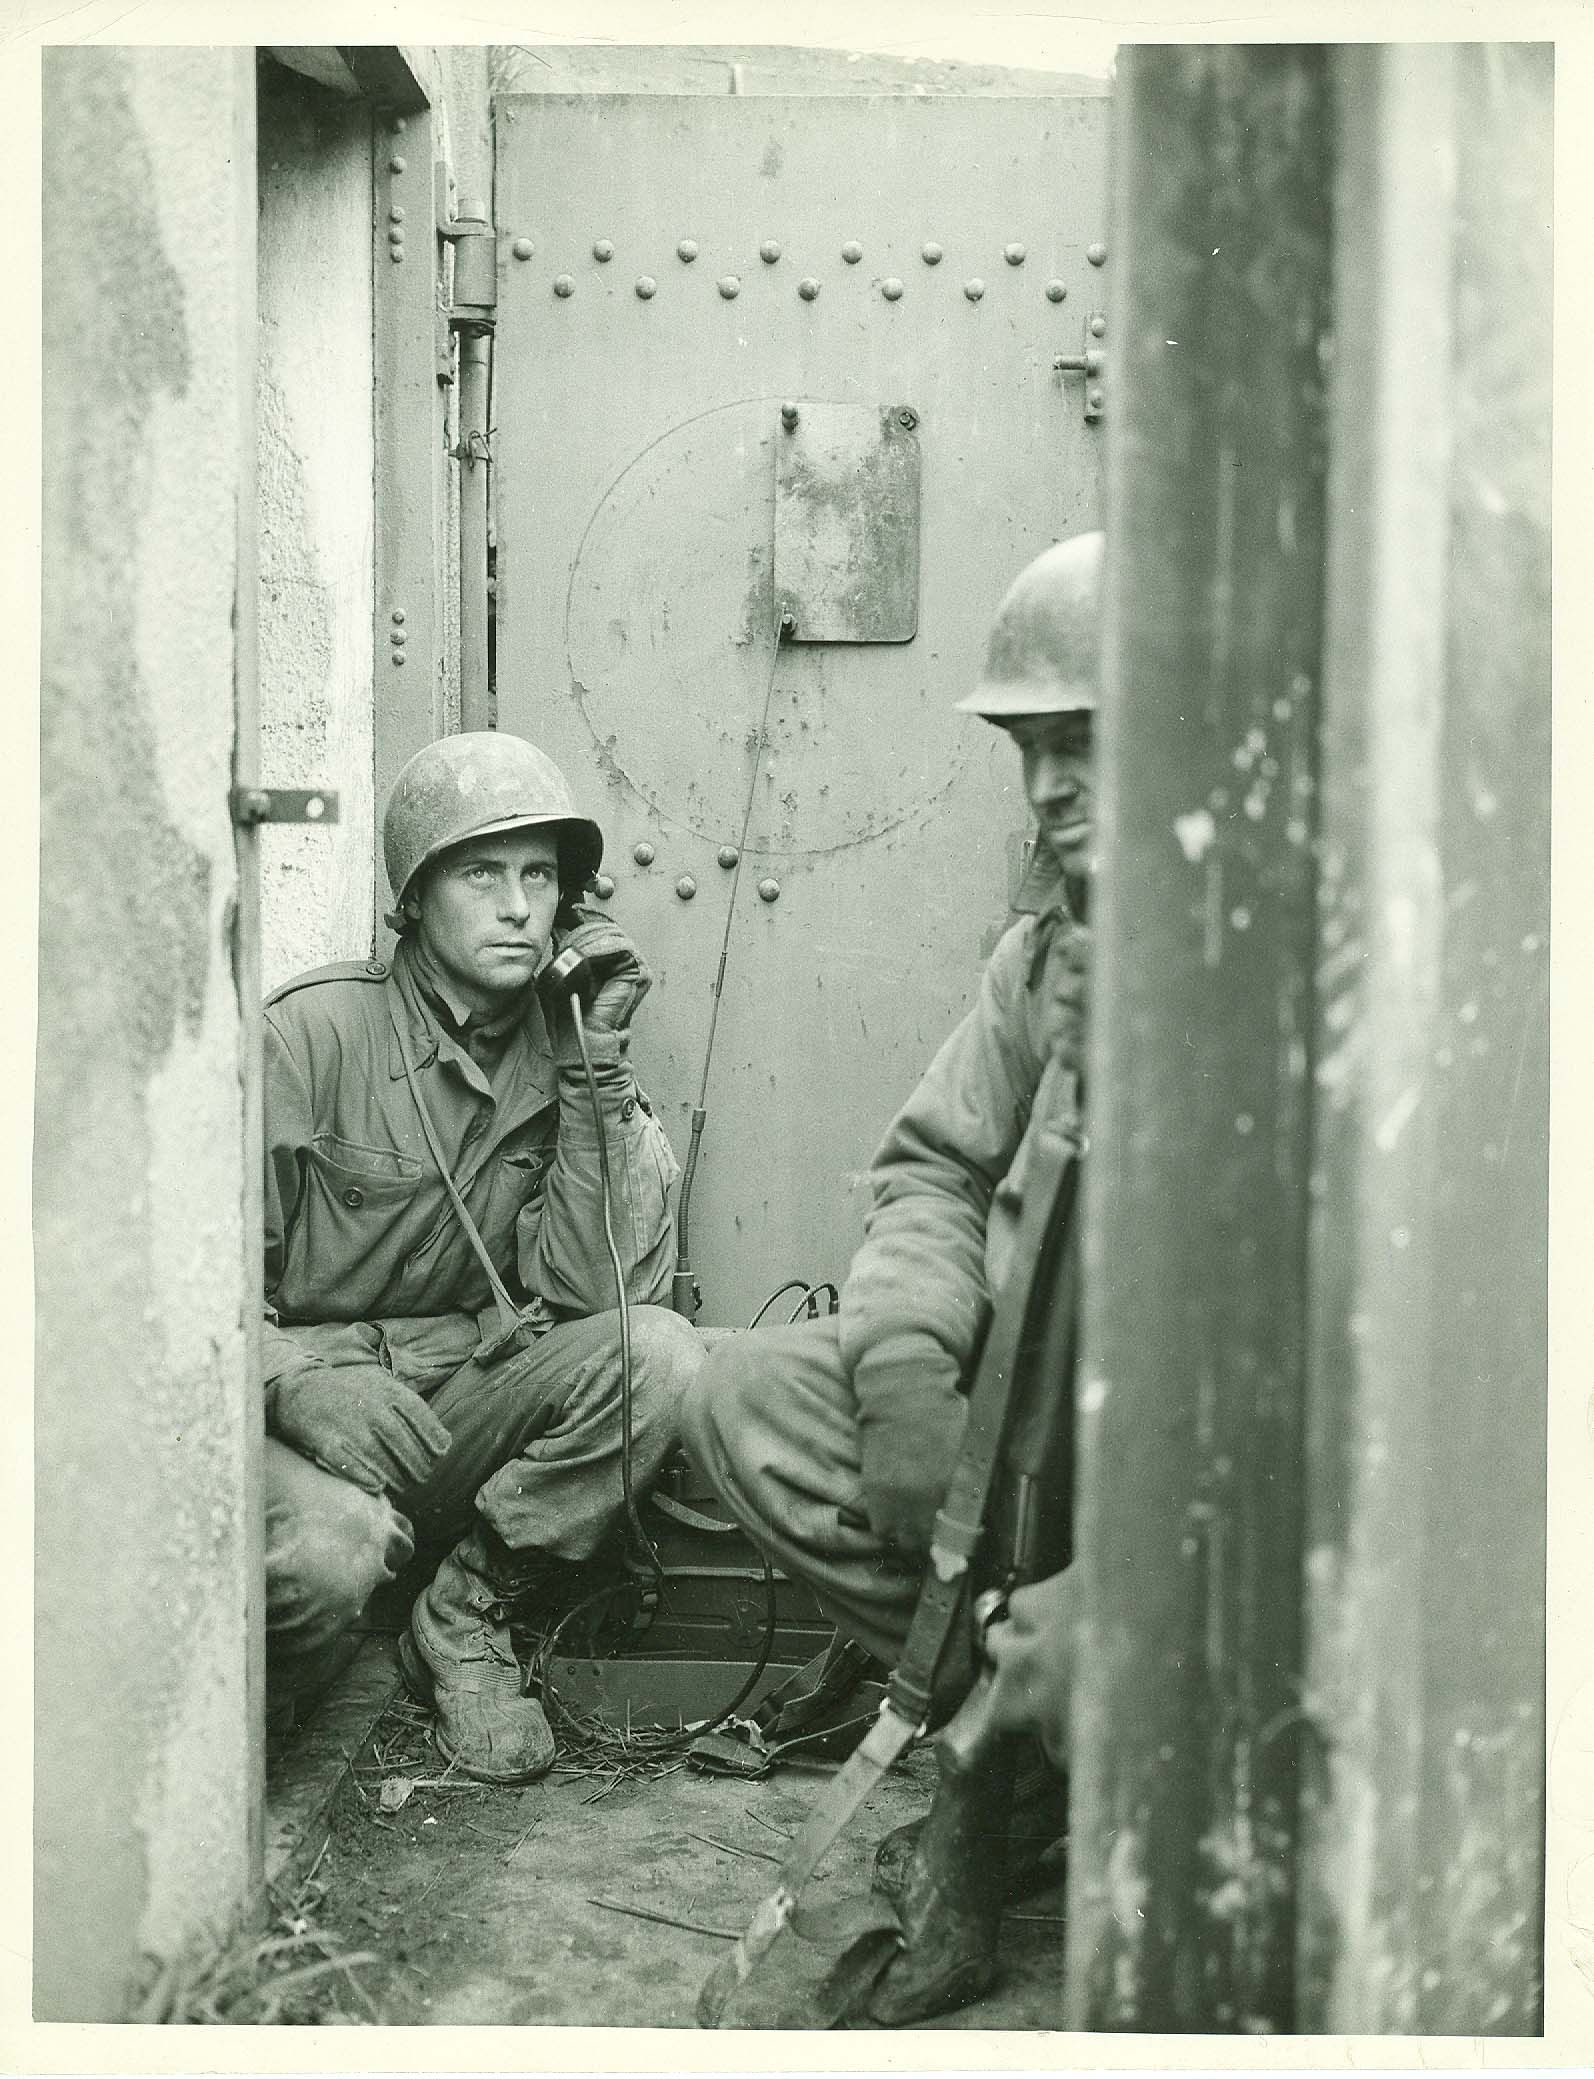 Date: 15 Dec 1944 Responsible agency / Photographer: United States Army Signal Corps. Tech 4 C. D. Bell. Description: Private First Class Joseph B. Wilkinson, Providence, RI, Radio Operator, and Sergeant Elmer J. Sullentrop, right, St. Louis, MO, a Field Artillery Observer, take up their post in an entrance of a Maginot Line pillbox, near Riedseltz, France. Company D, 62nd Armored Infantry Battalion, 14th Armored Division